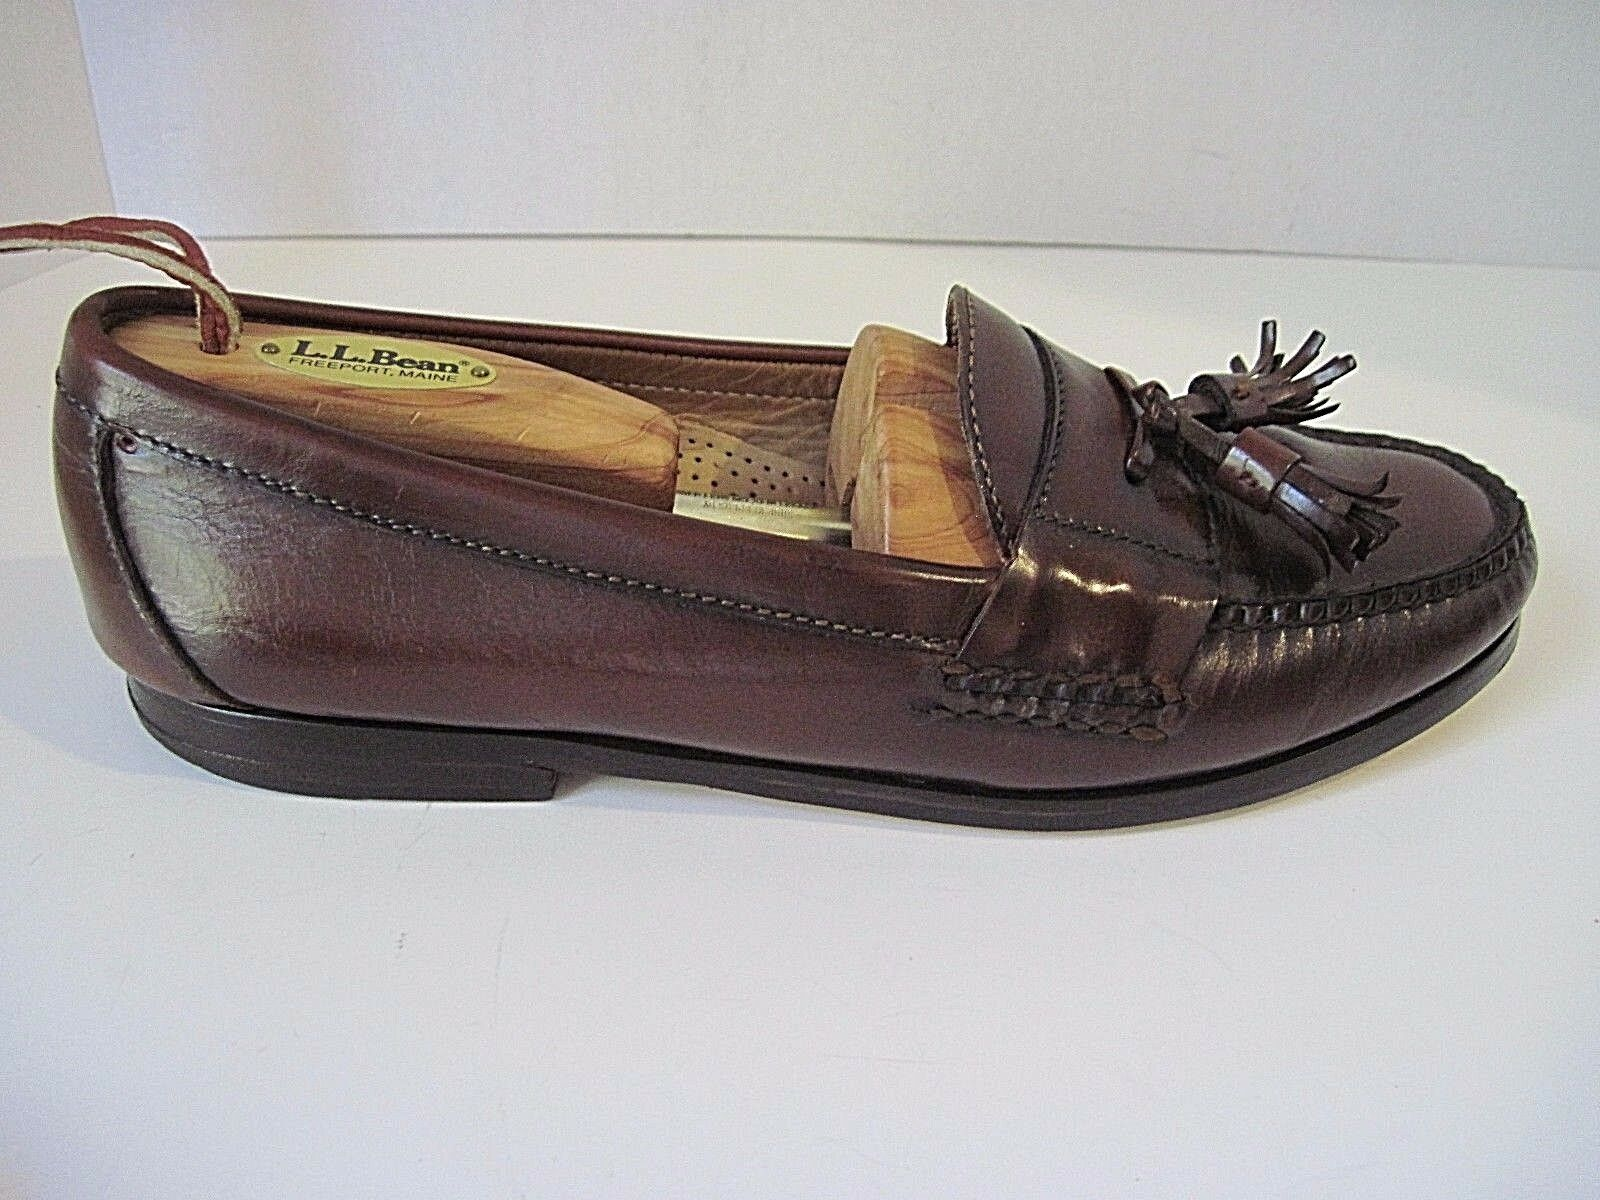 COLE HAAN Penny Brown Leather Moc Toe Tassel Loafers Men's Casual shoes 10 D